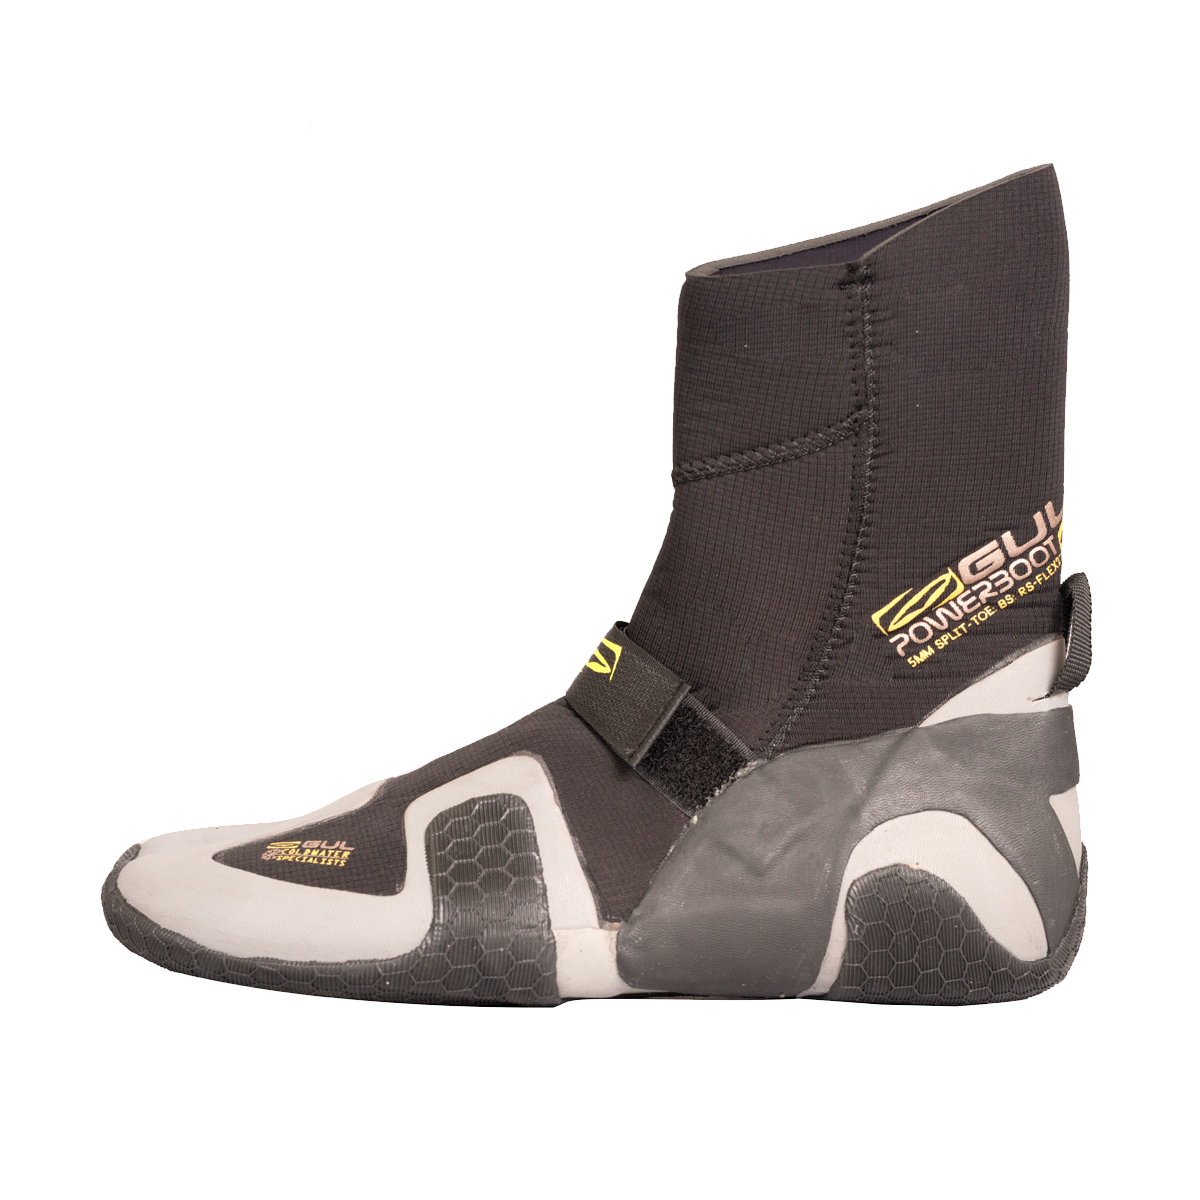 neoprénové boty 5mm '18 GUL Split Toe Power Boot - 11